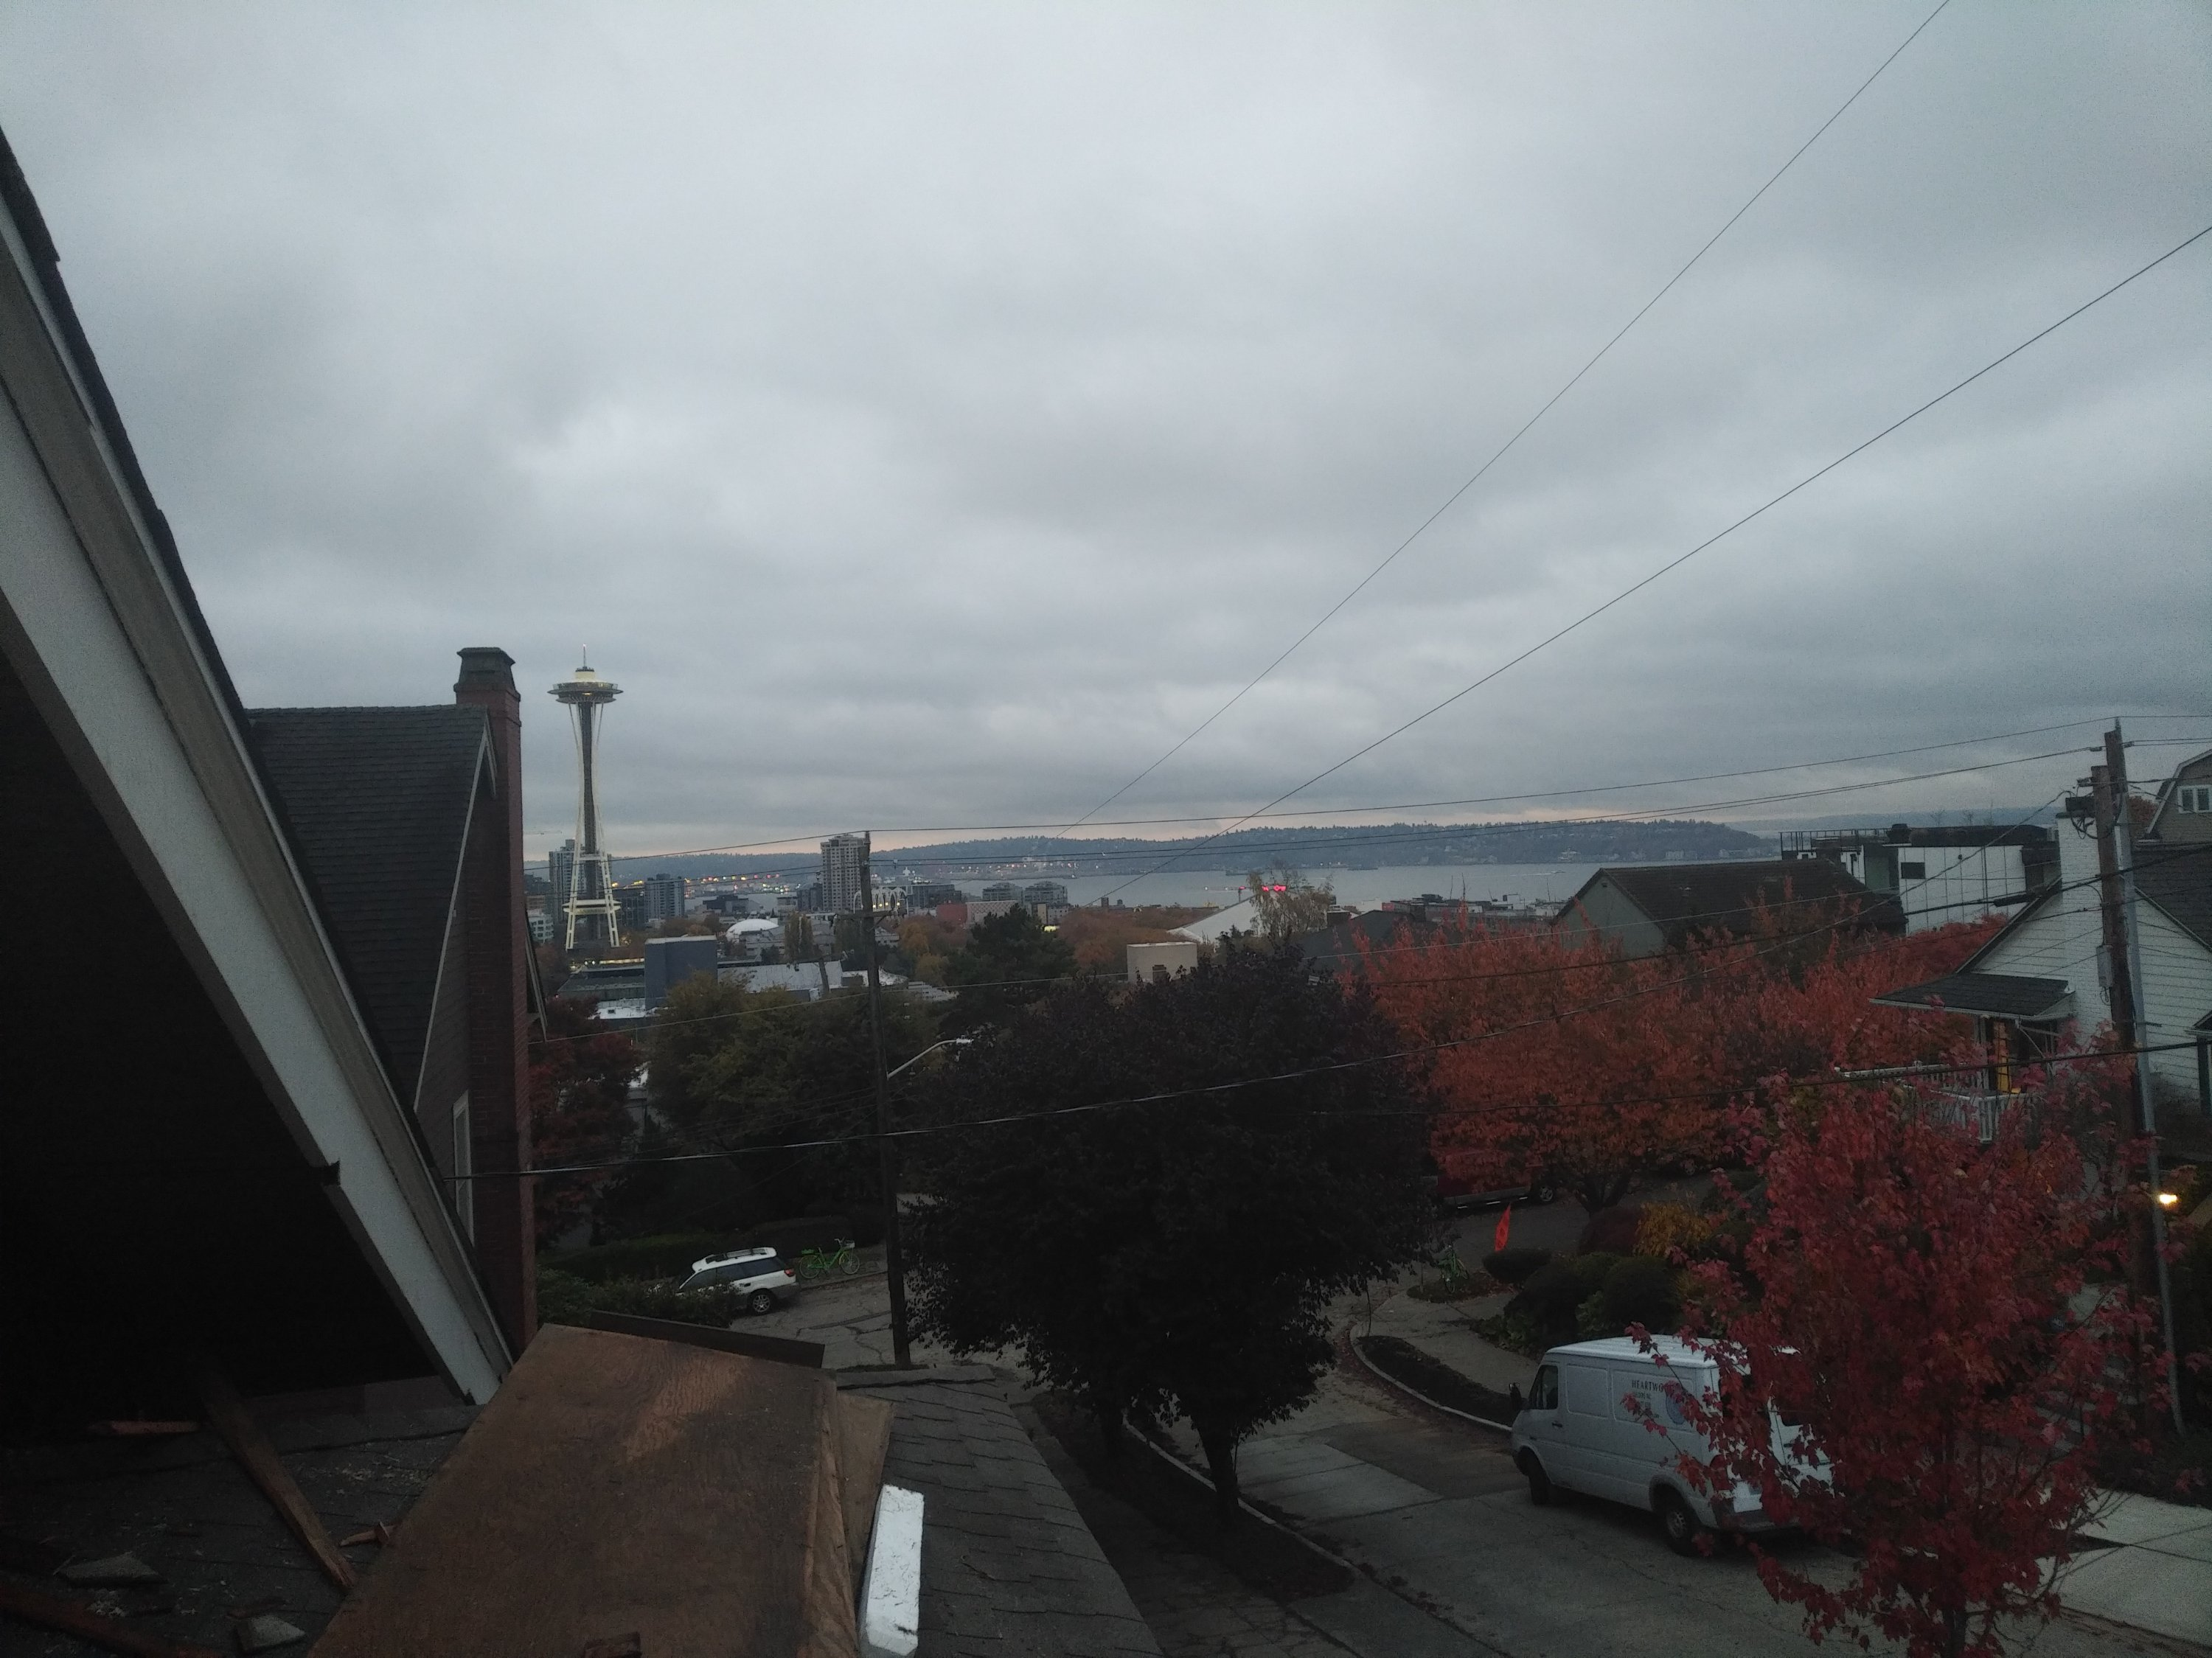 A view from a house rooftop overlooking Seattle. The space needle, the sound, and several large buildings are visible. The sky is covered by grey rainclouds.